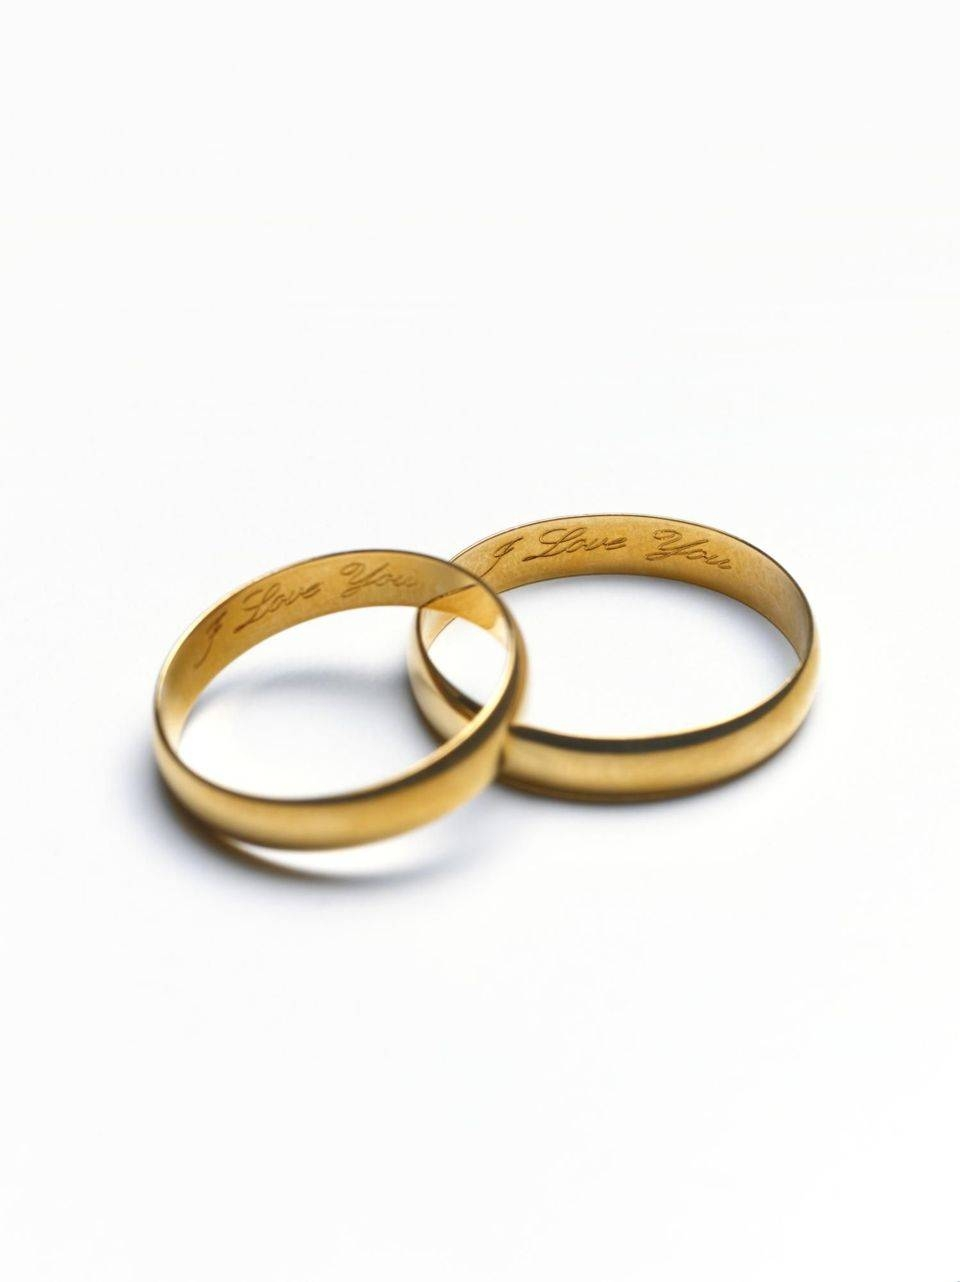 Wedding Rings : Classic Wedding Band Engraving Creative Choices Of Regarding Engravings On Wedding Rings (View 14 of 15)